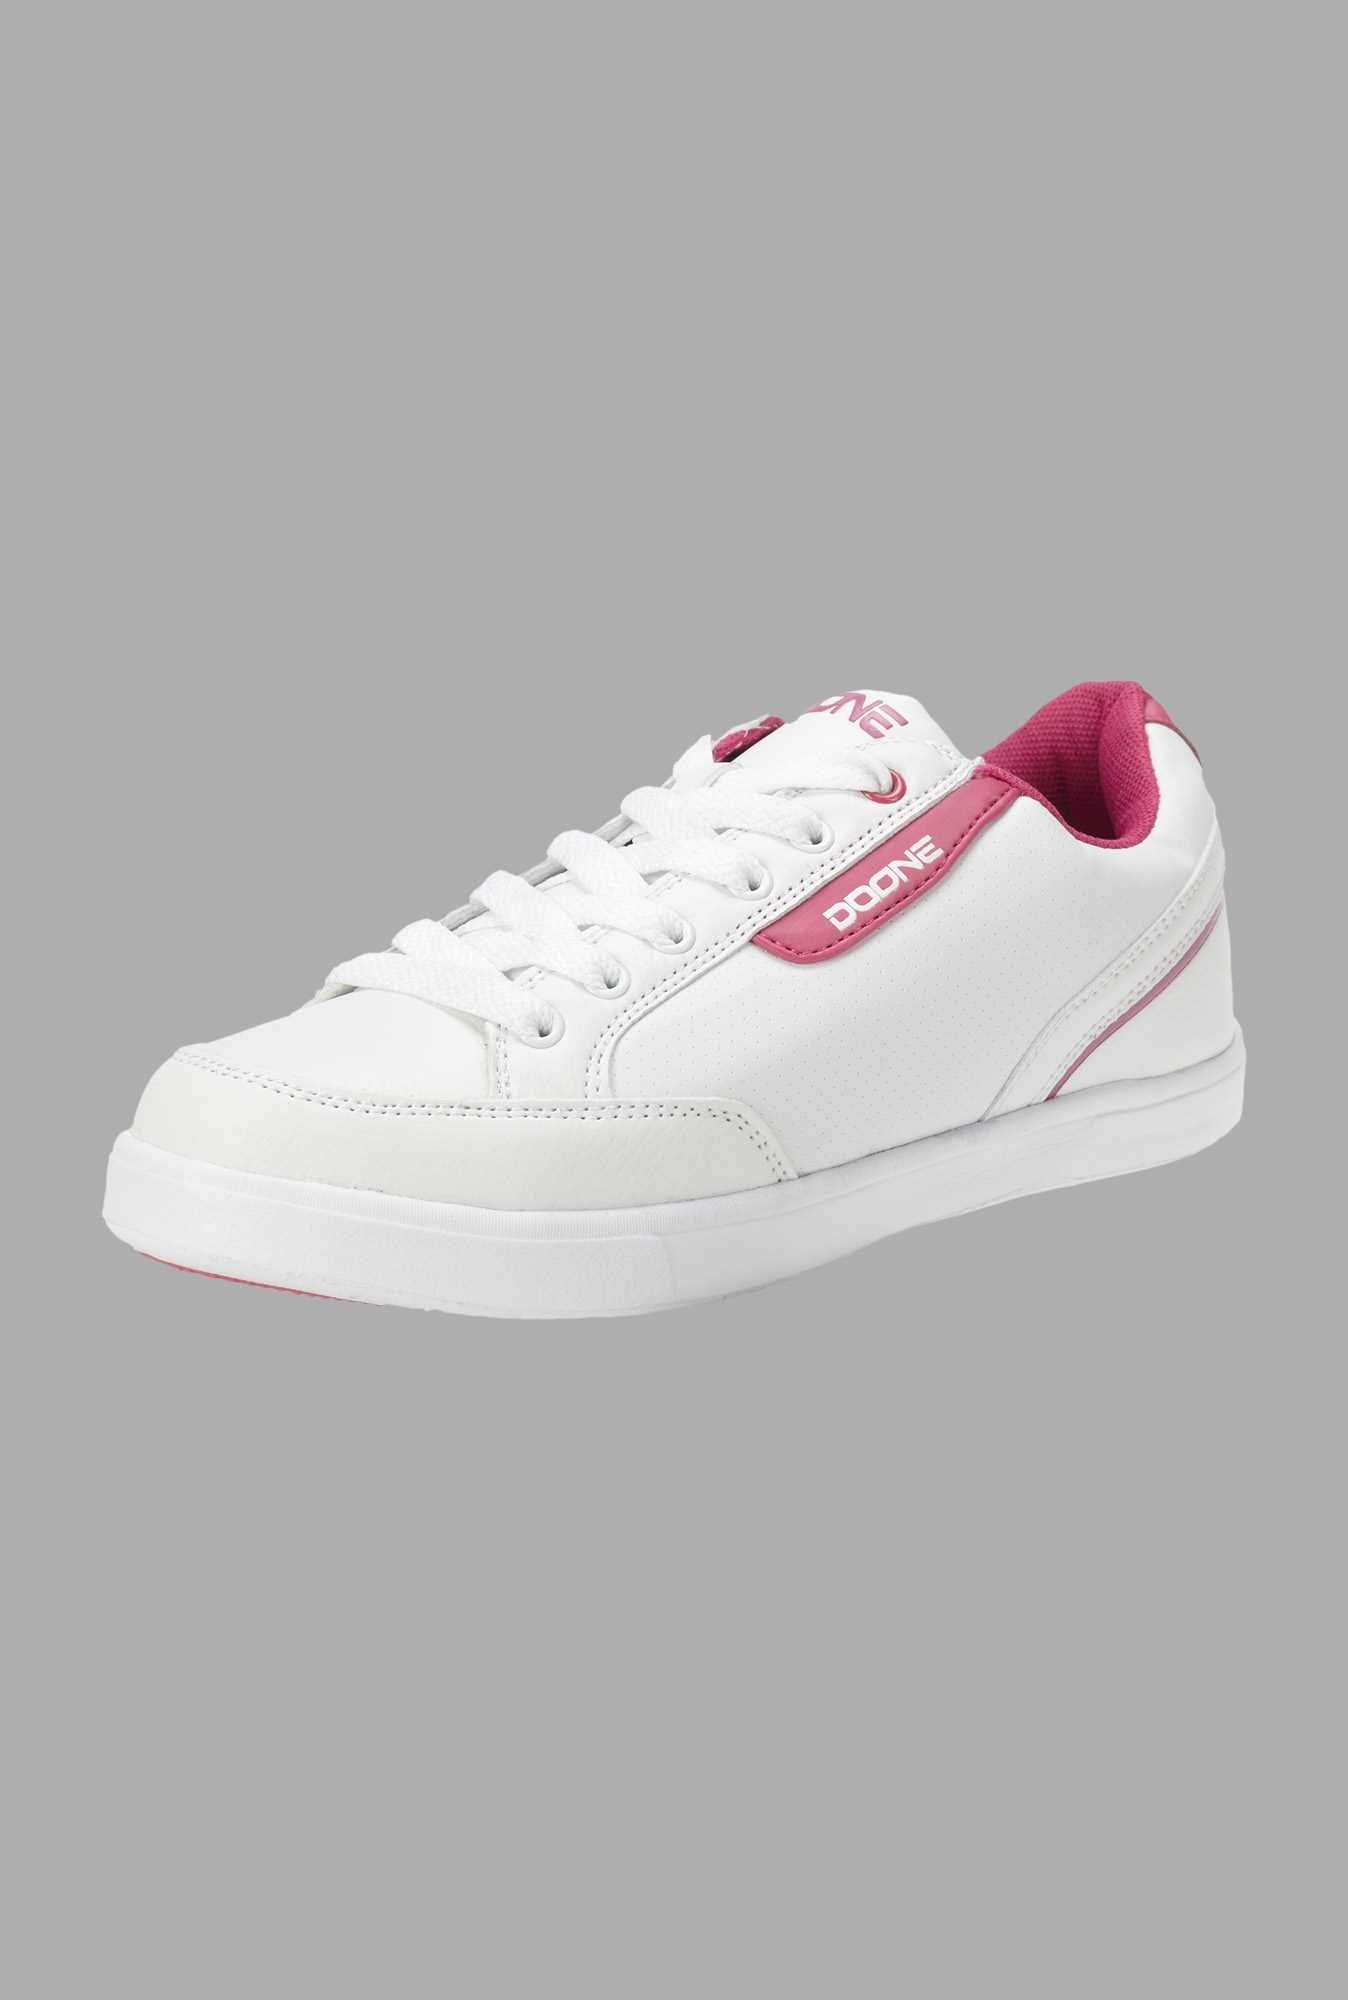 Doone White Training Shoes